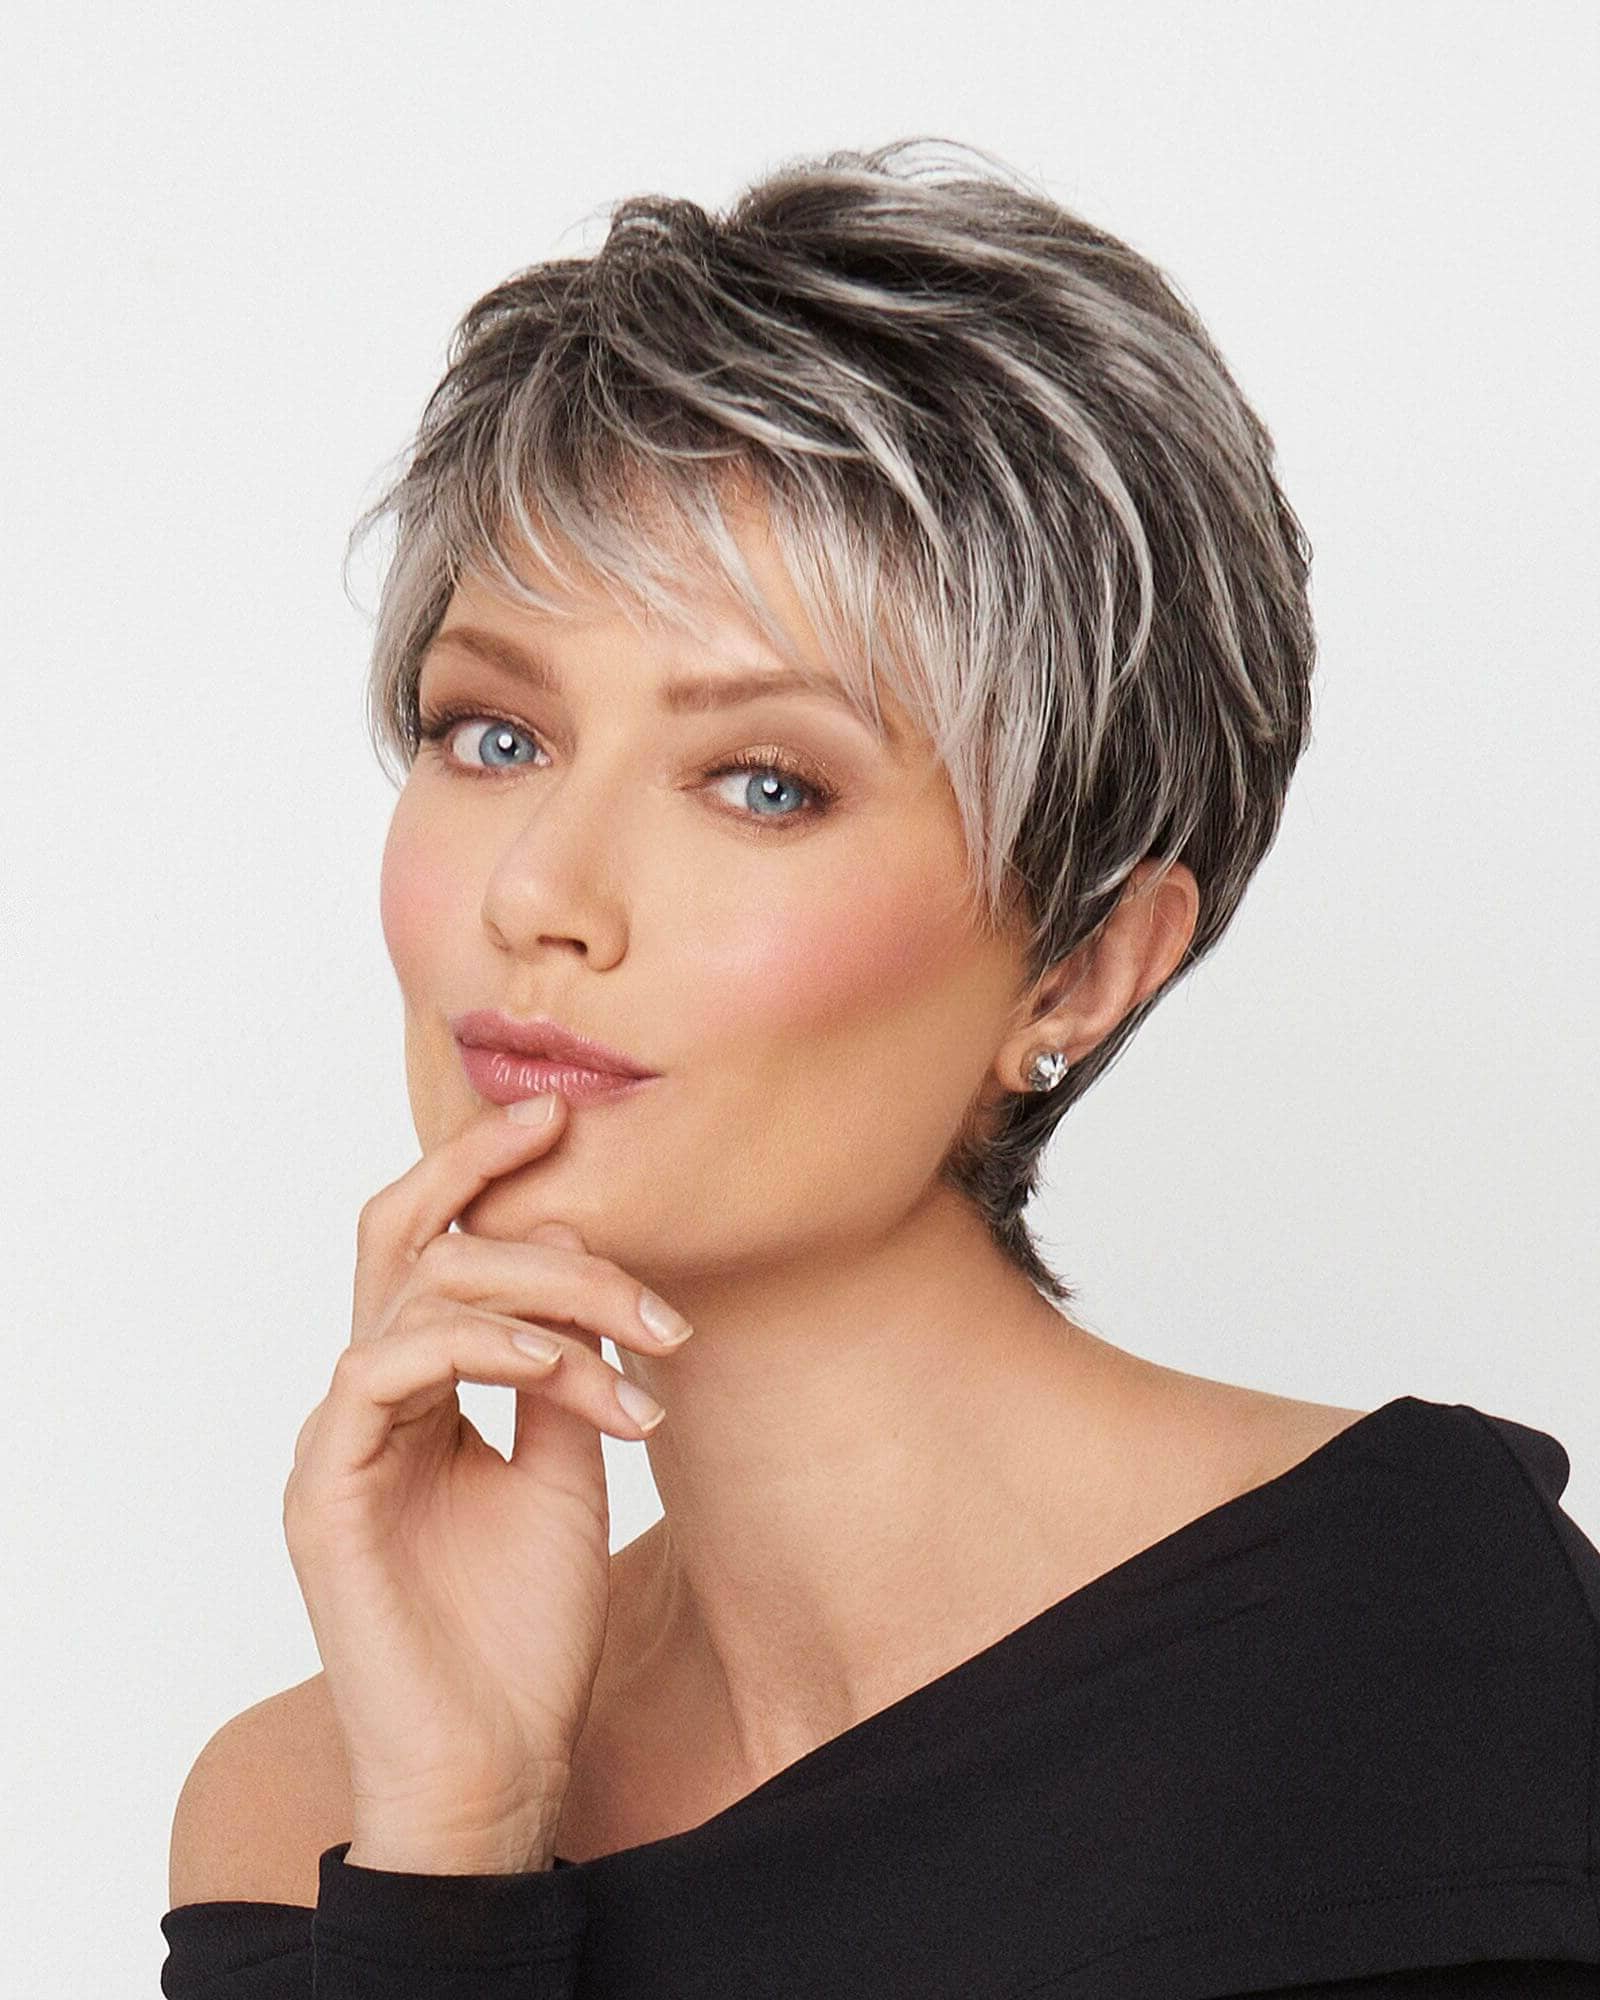 50 Pixie Haircuts You'll See Trending In 2020 For Most Recently Released Disconnected Pixie Haircuts For Fine Hair (View 5 of 20)